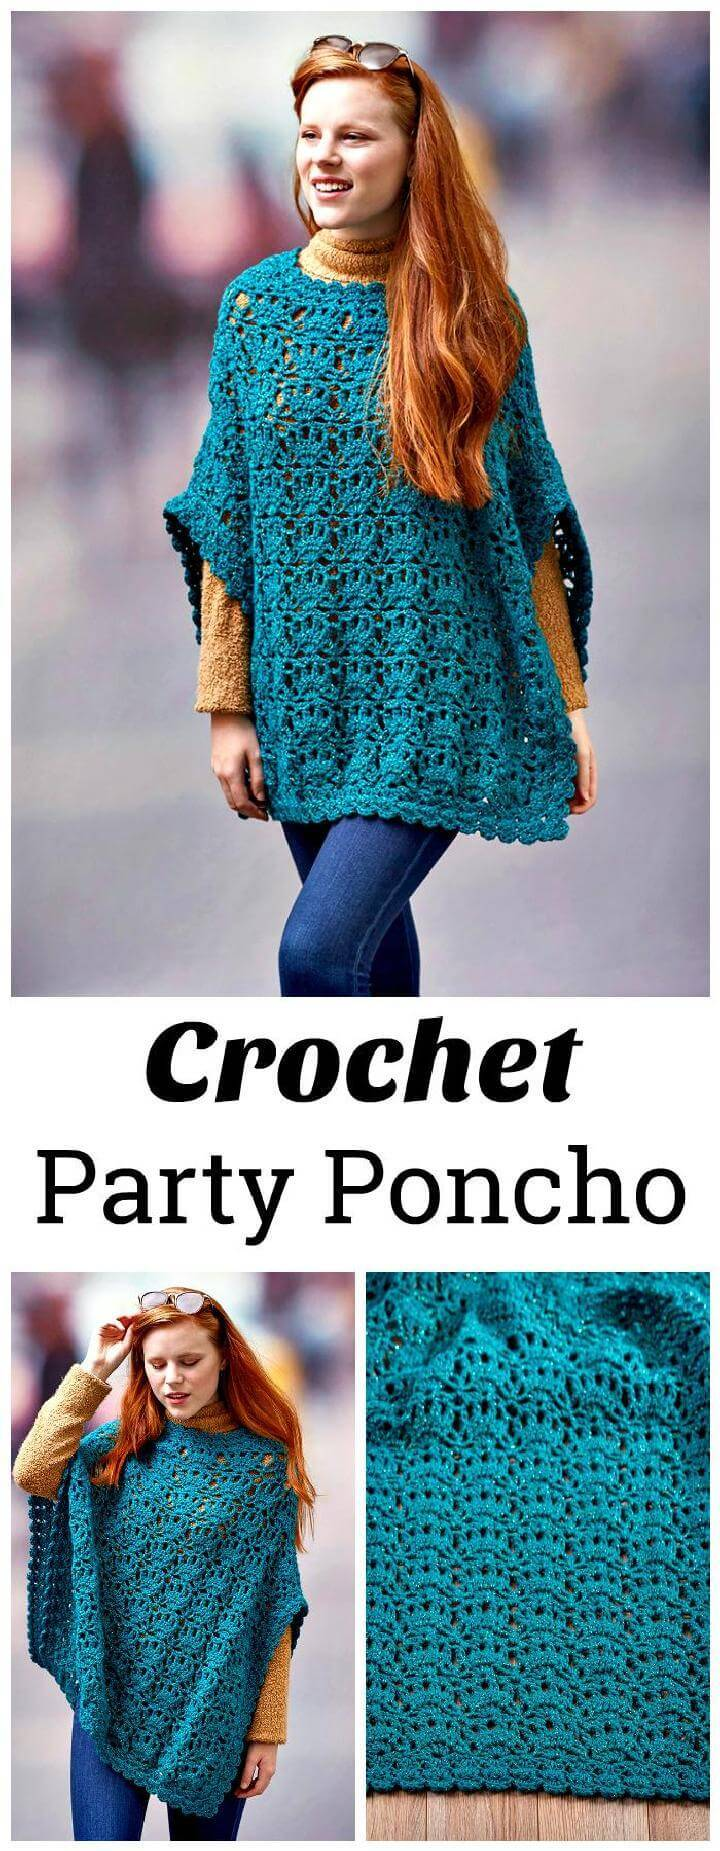 Crochet Party Poncho